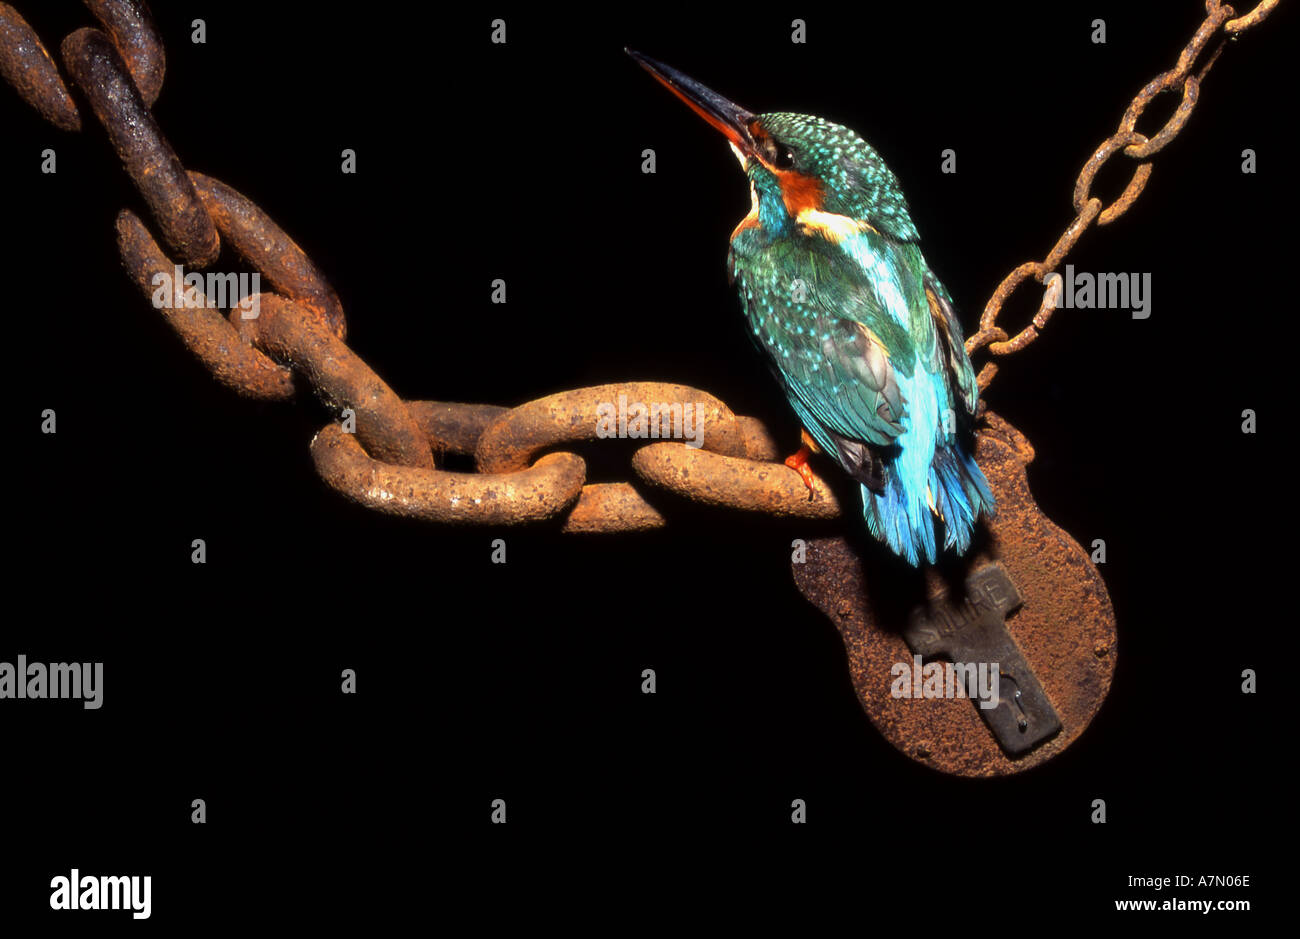 European kingfisher Alcedo atthis perched on rusted chain link and padlock - Stock Image